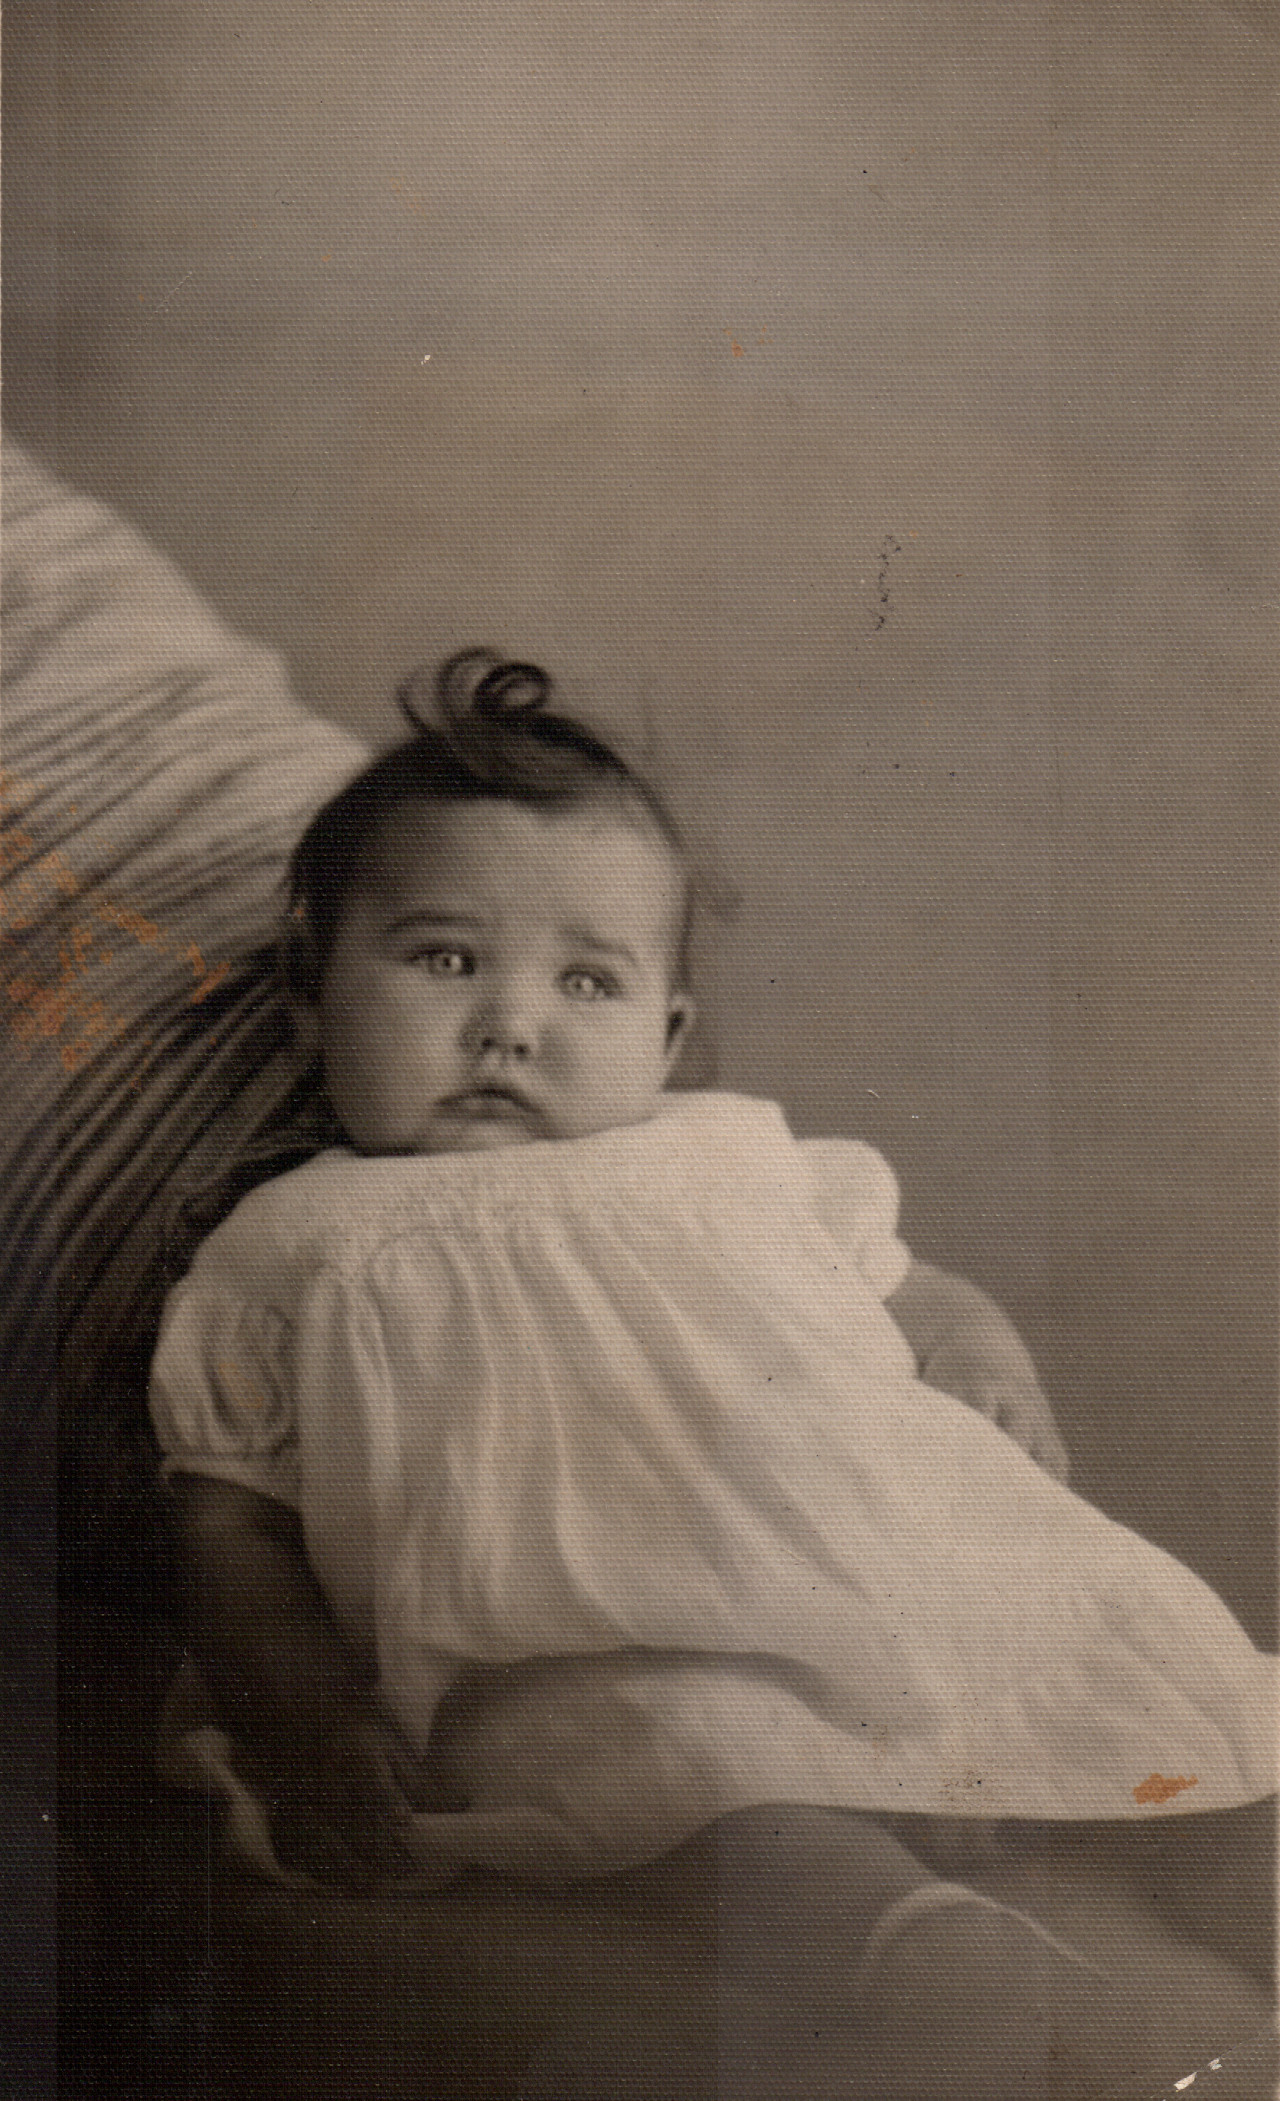 Shirley as a baby in 1934